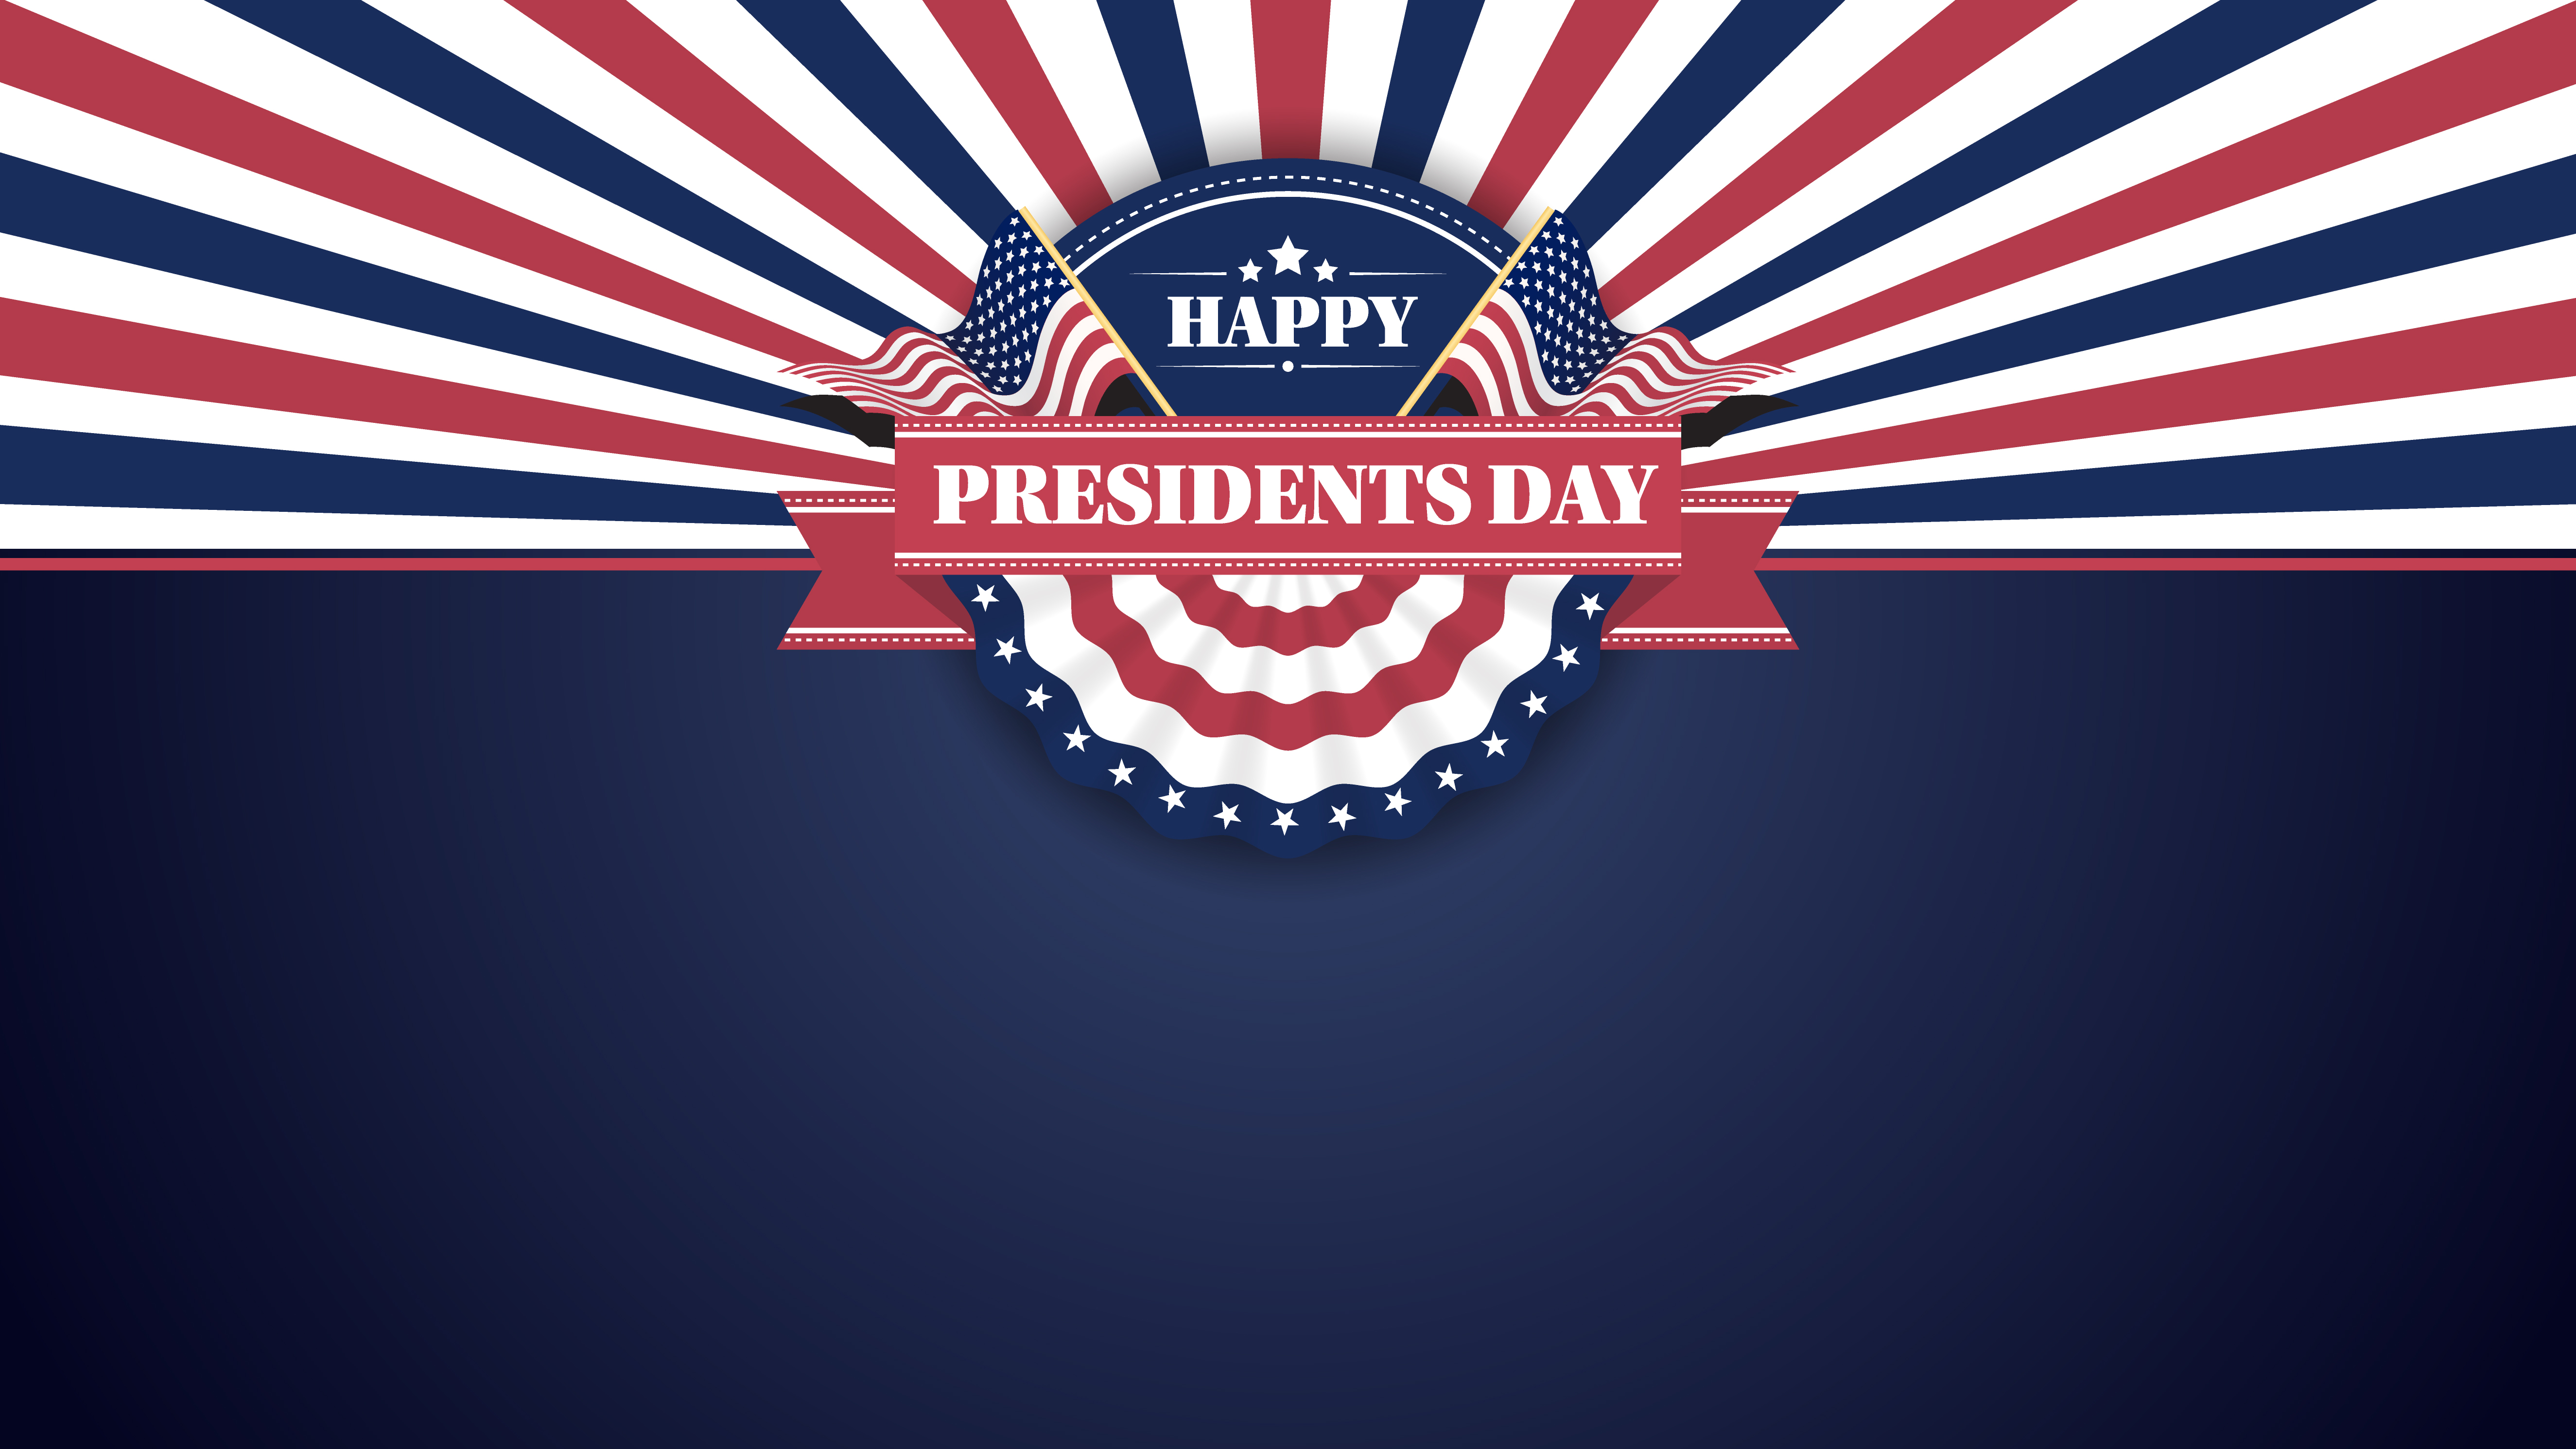 happy presidents day banner background and greeting cards